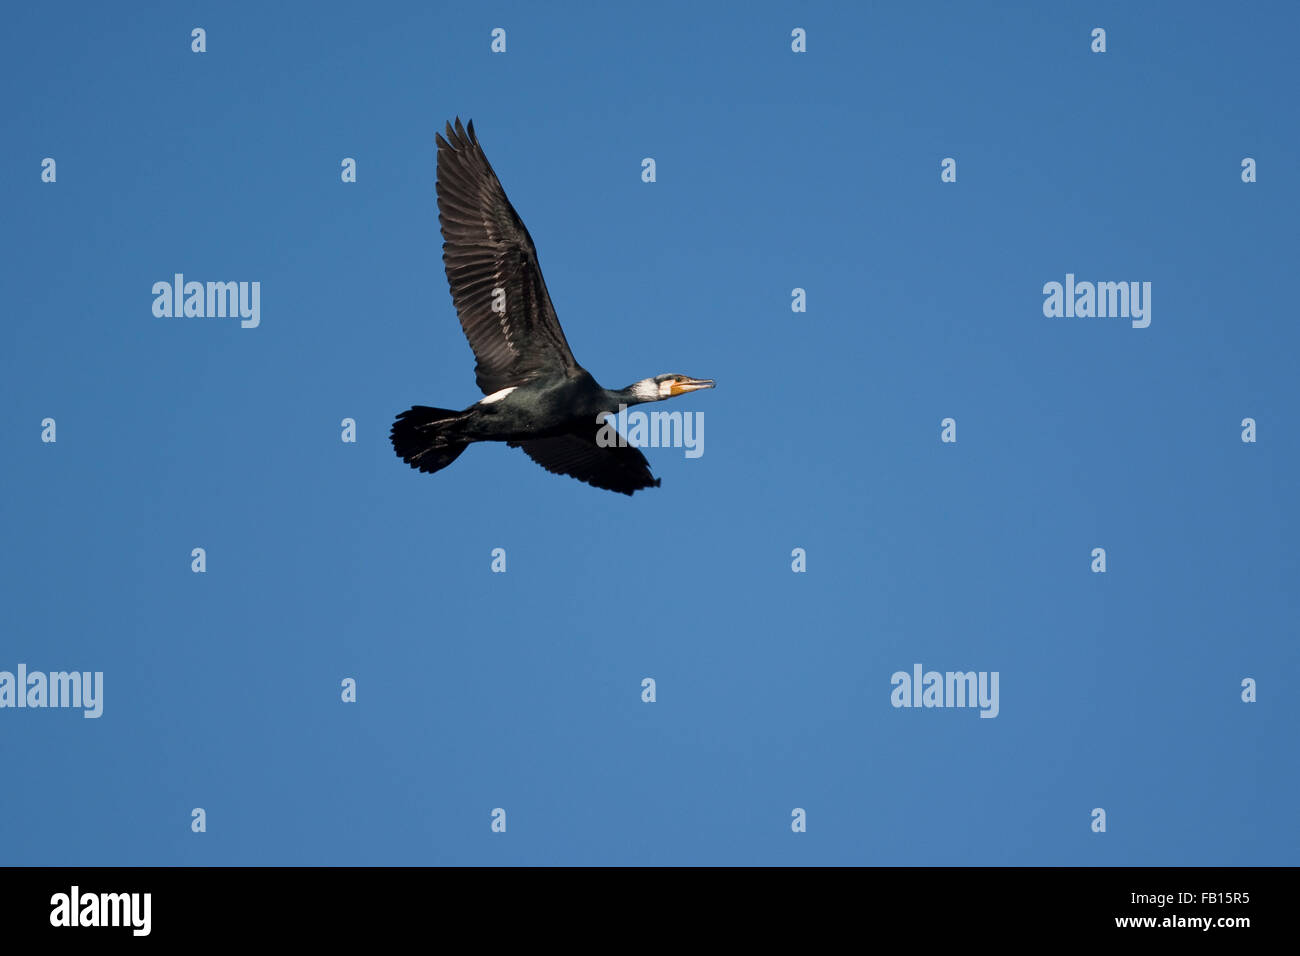 Great Cormorant, Grand Cormoran, flight, Kormoran im Flug vor blauem Himmel, Flugbild, Phalacrocorax carbo - Stock Image